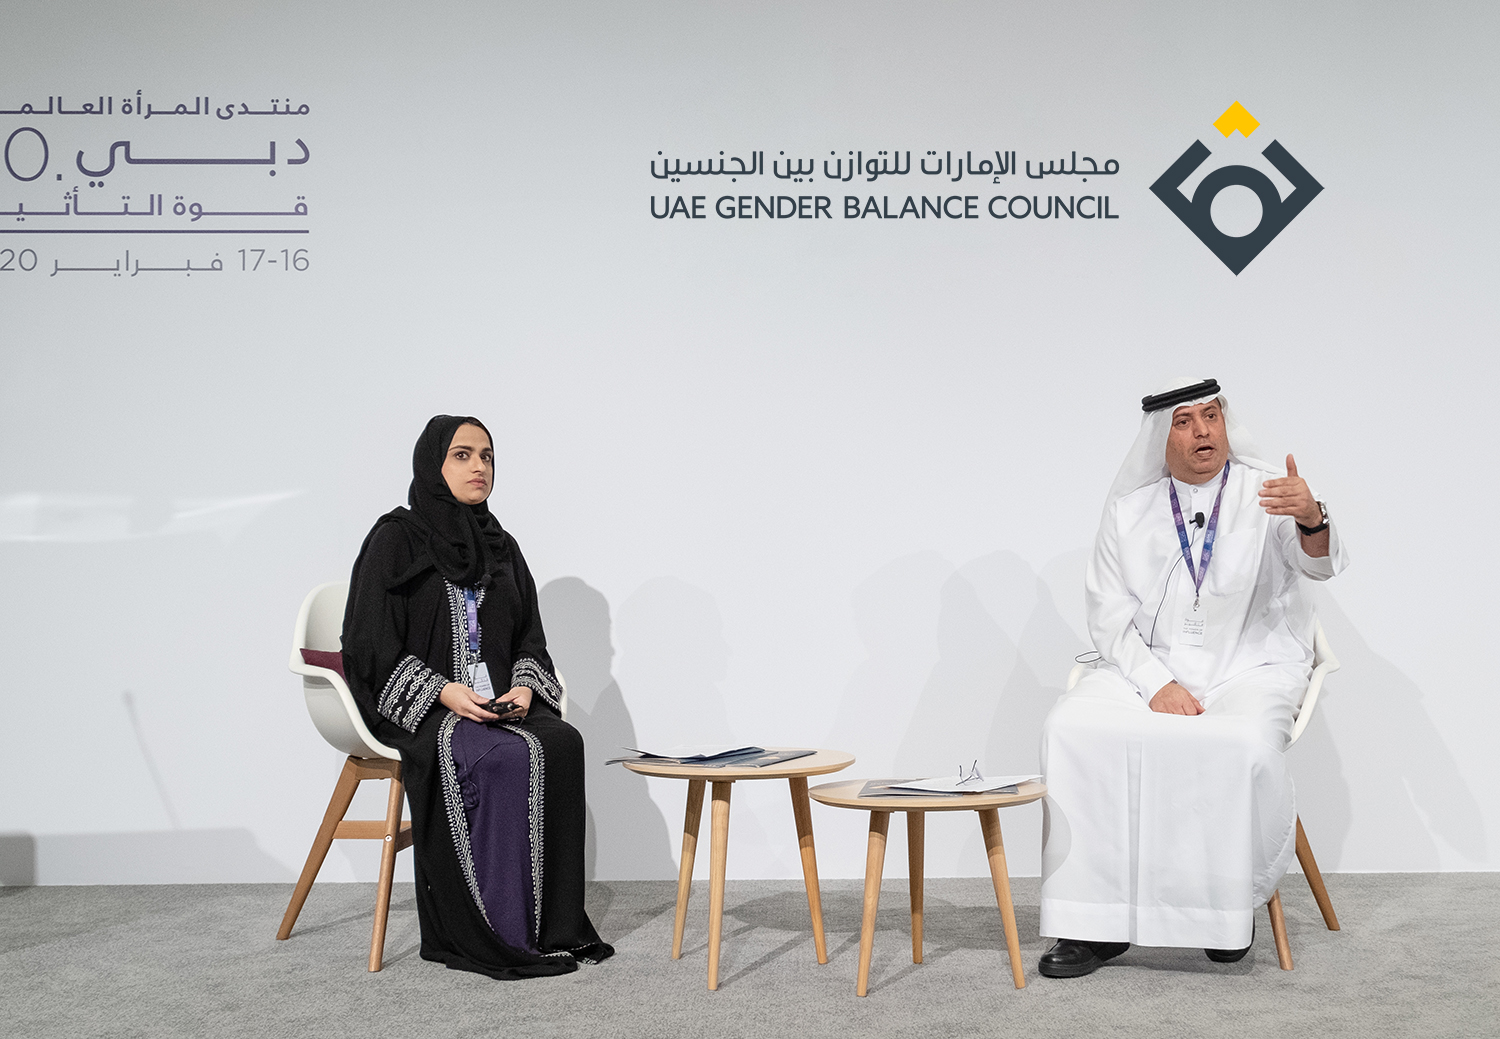 UAE Gender Balance Council collaborates with OECD to conduct workshop on developing 'International Best Practices in Gender Balance Toolkit'